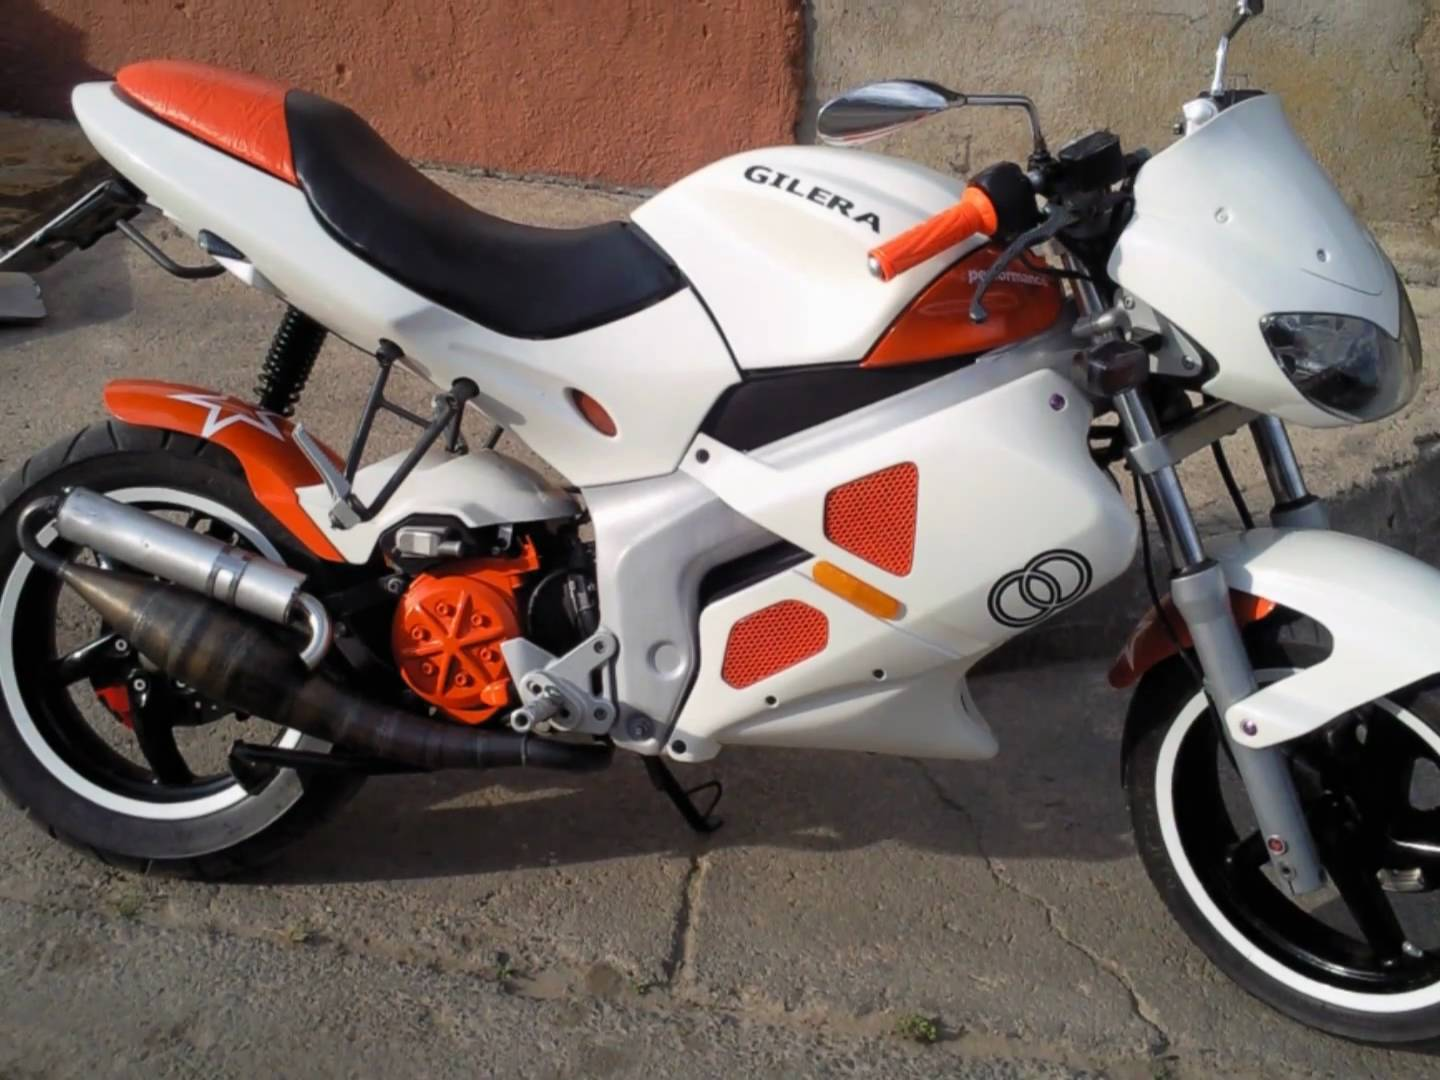 Gilera DNA 180 images #95113